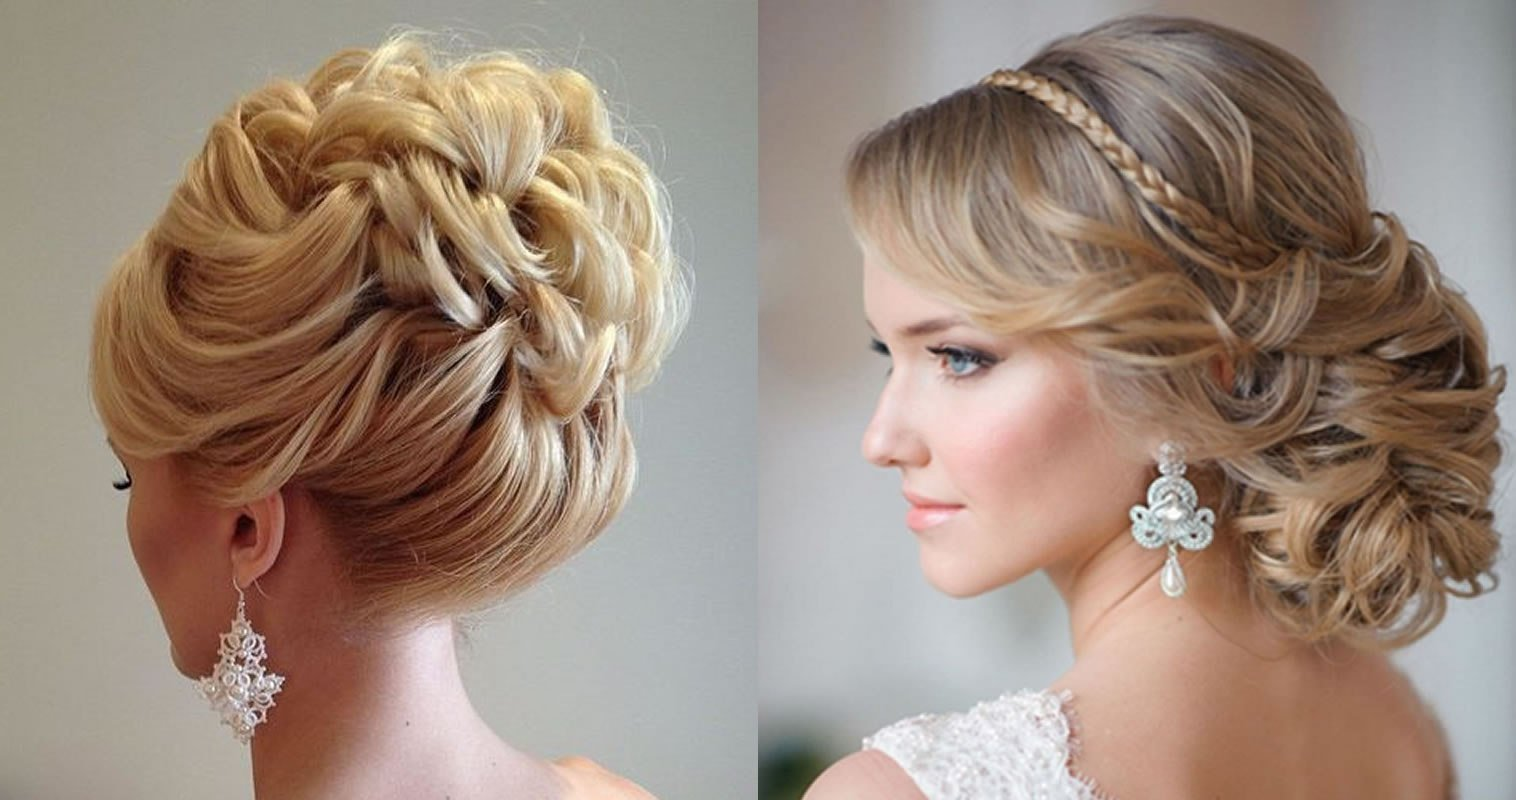 The Best Updo Wedding Hairstyles 2019 Hair Color Ideas For Bride Pictures